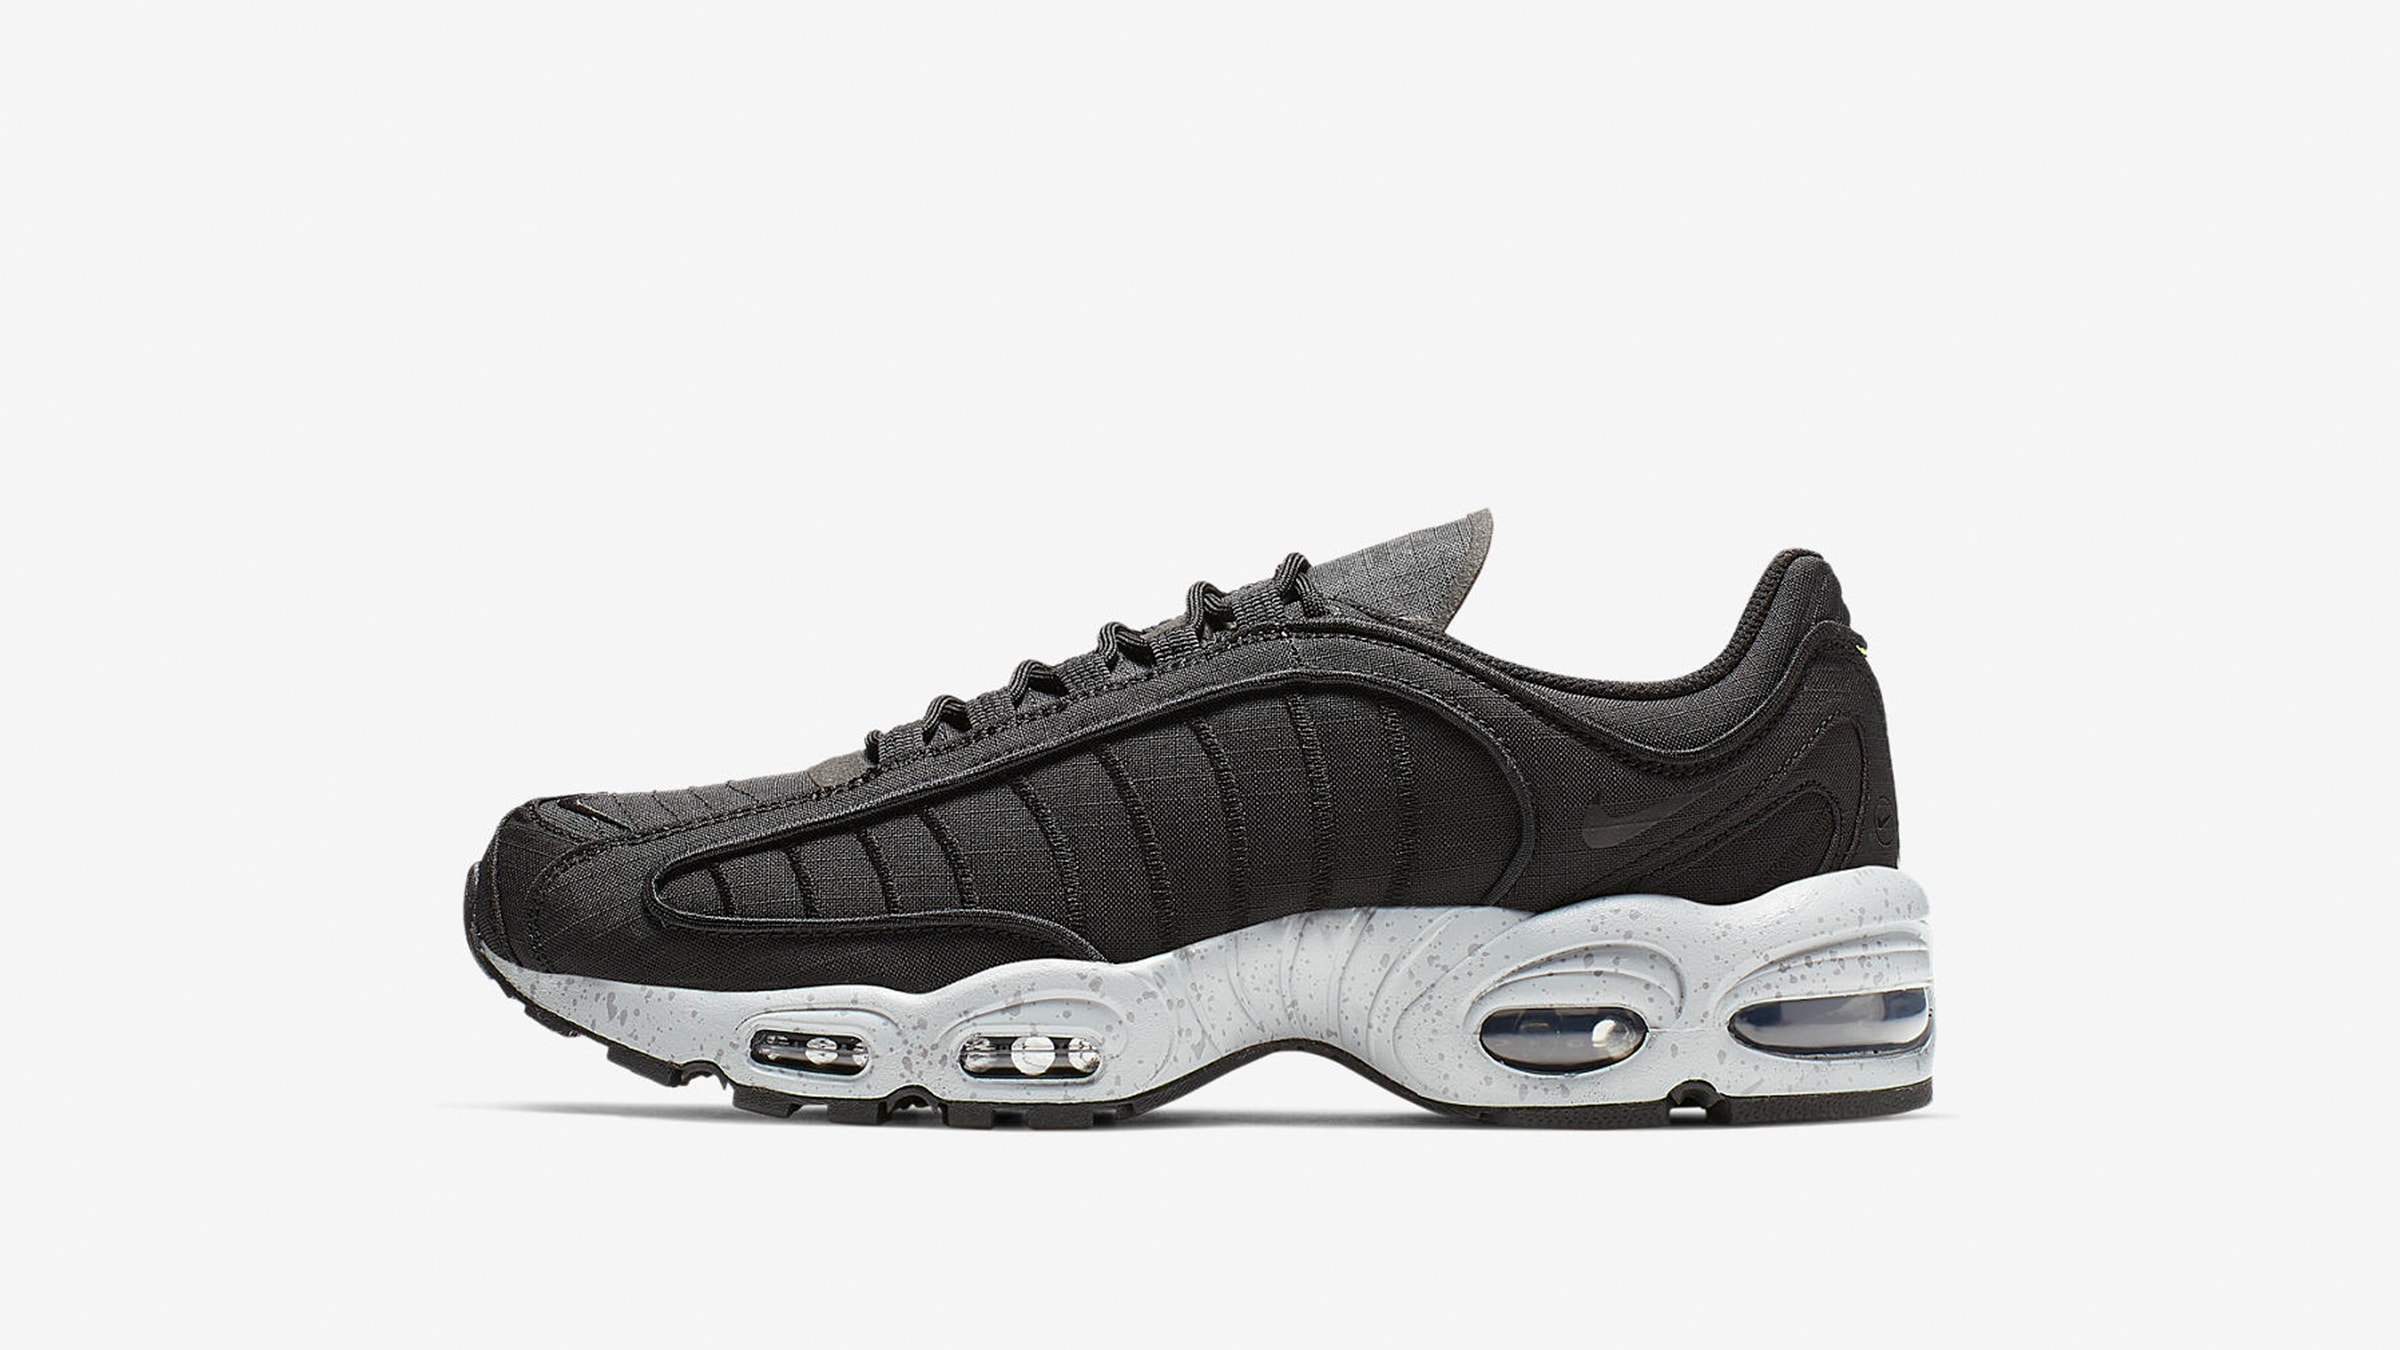 e38b03d8c0b950 Celebrating its 20th Anniversary, the Nike Air Max Tailwind receives an  rugged ripstop upgrade with a flourish of fluro